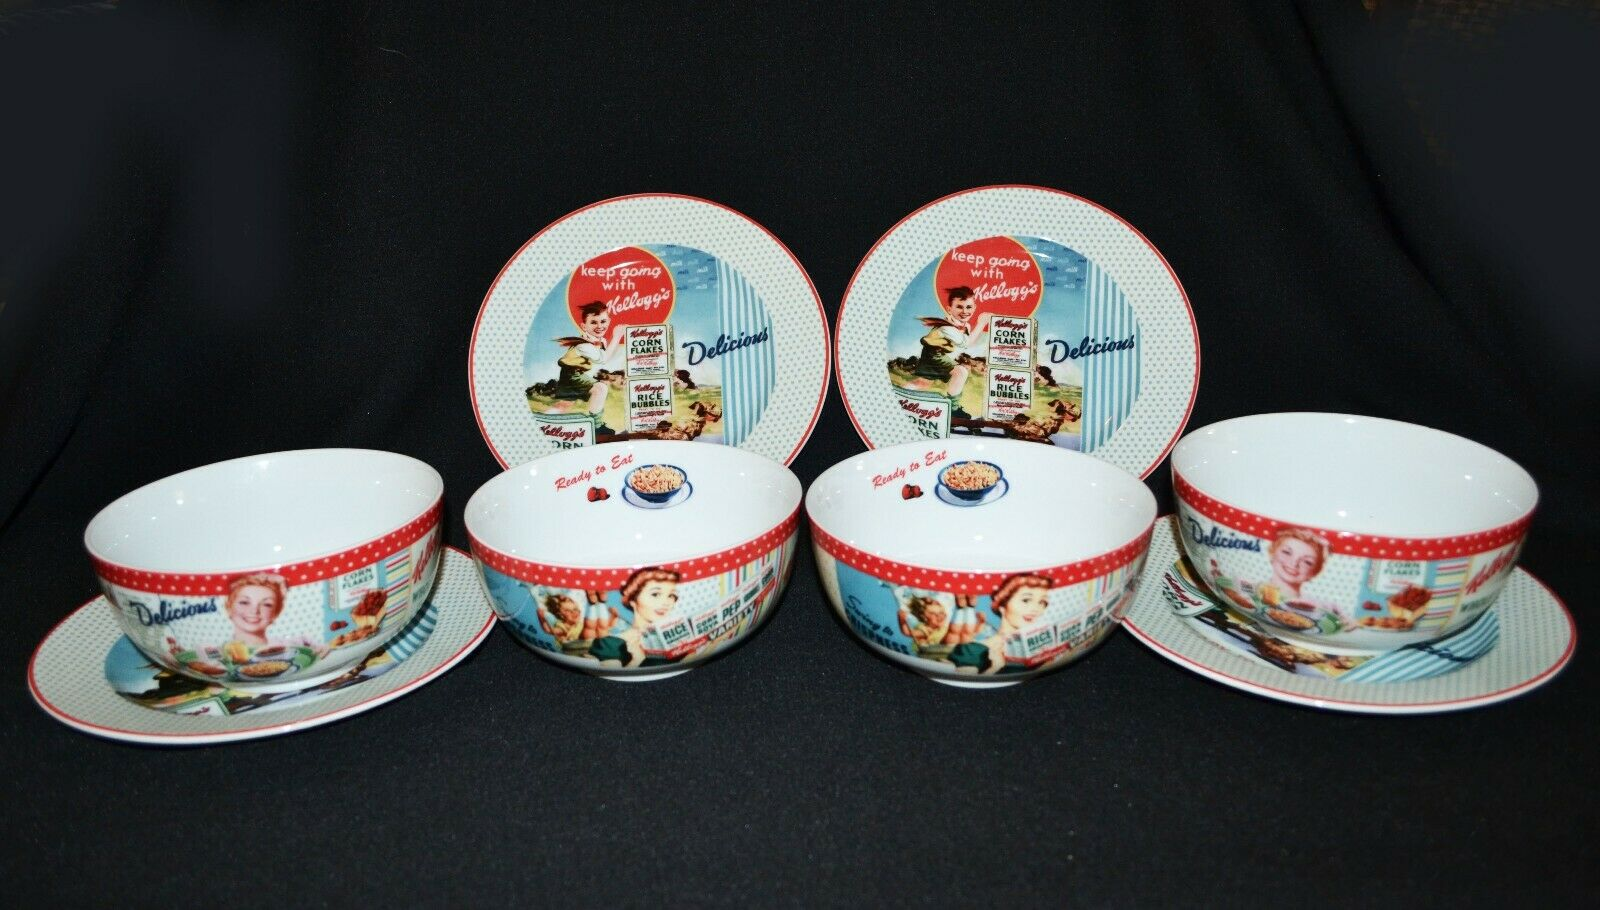 Kellogs Vintage Style Breakfast Plates And Bowl Set 2012  Rare Hard To Find